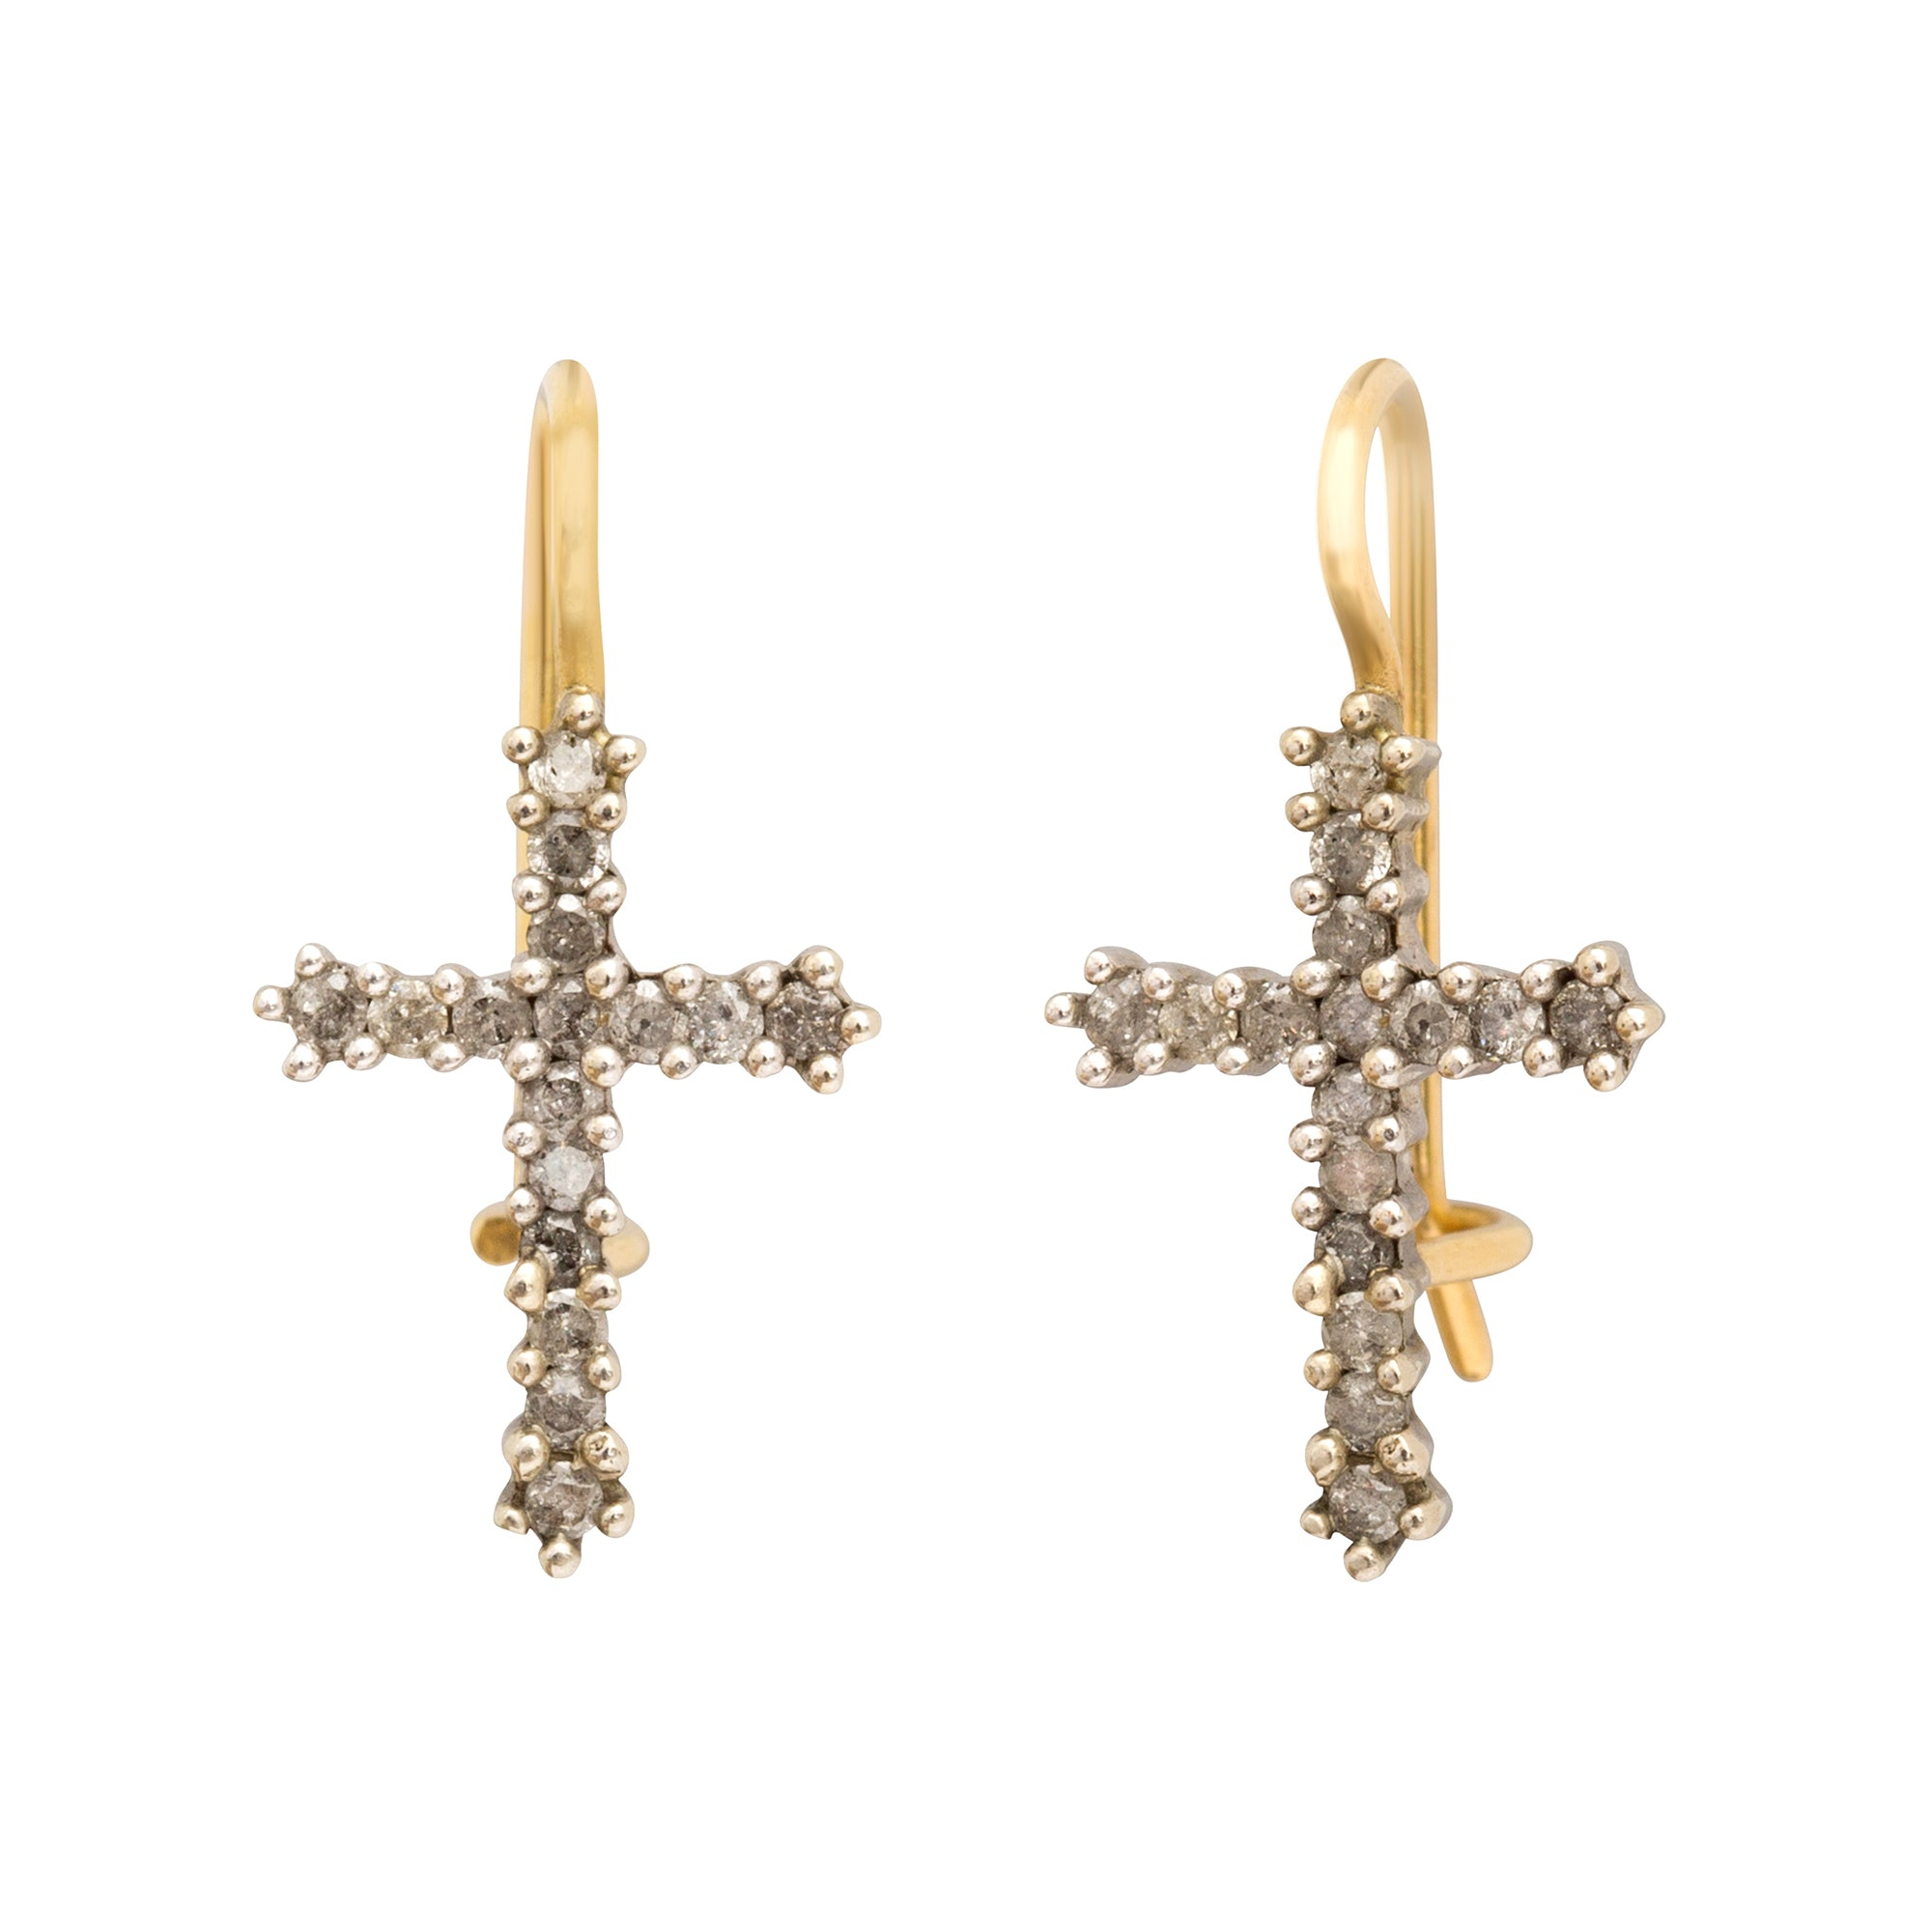 Cross Earrings by Renee Lewis for Broken English Jewelry